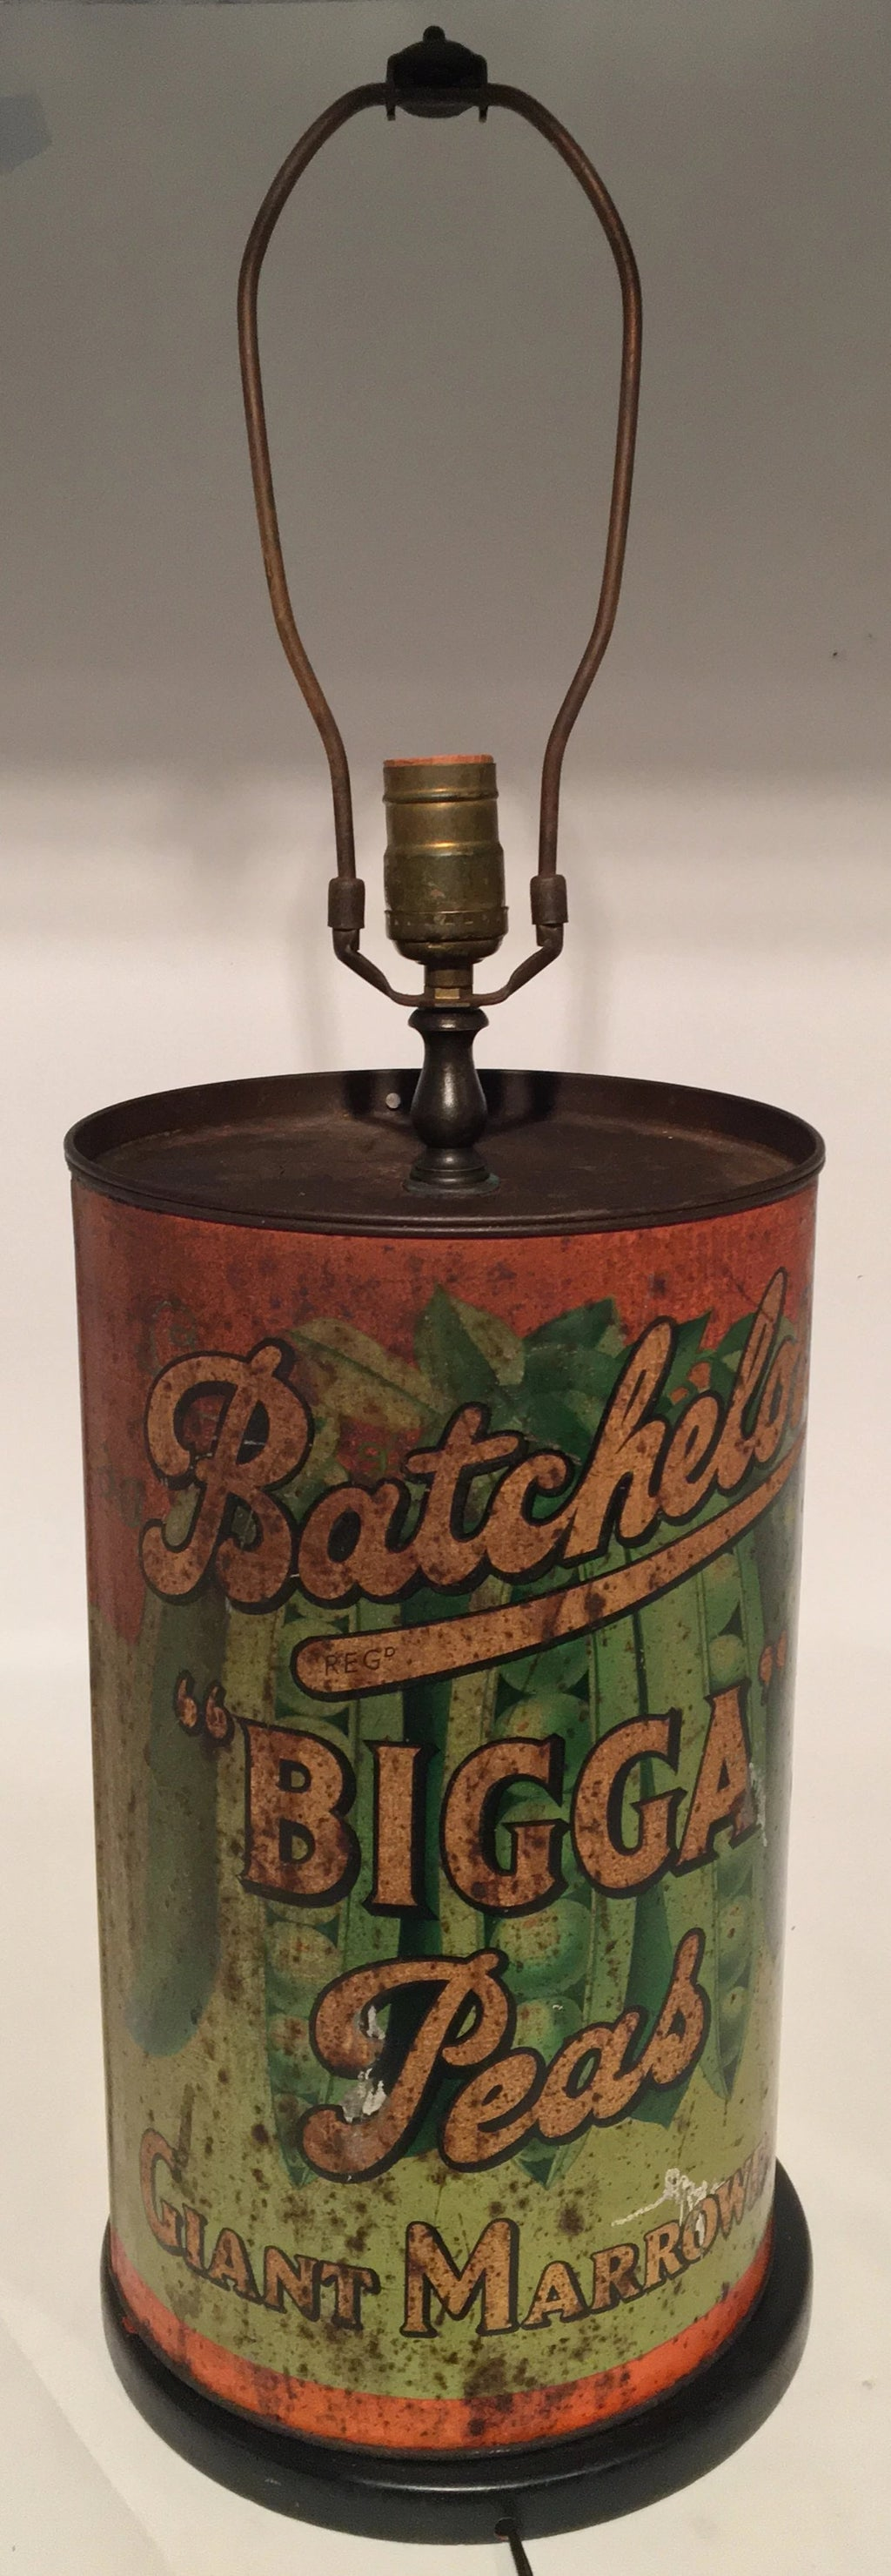 "BACHELOR'S ""BIGGA"" PEAS TIN LAMP"